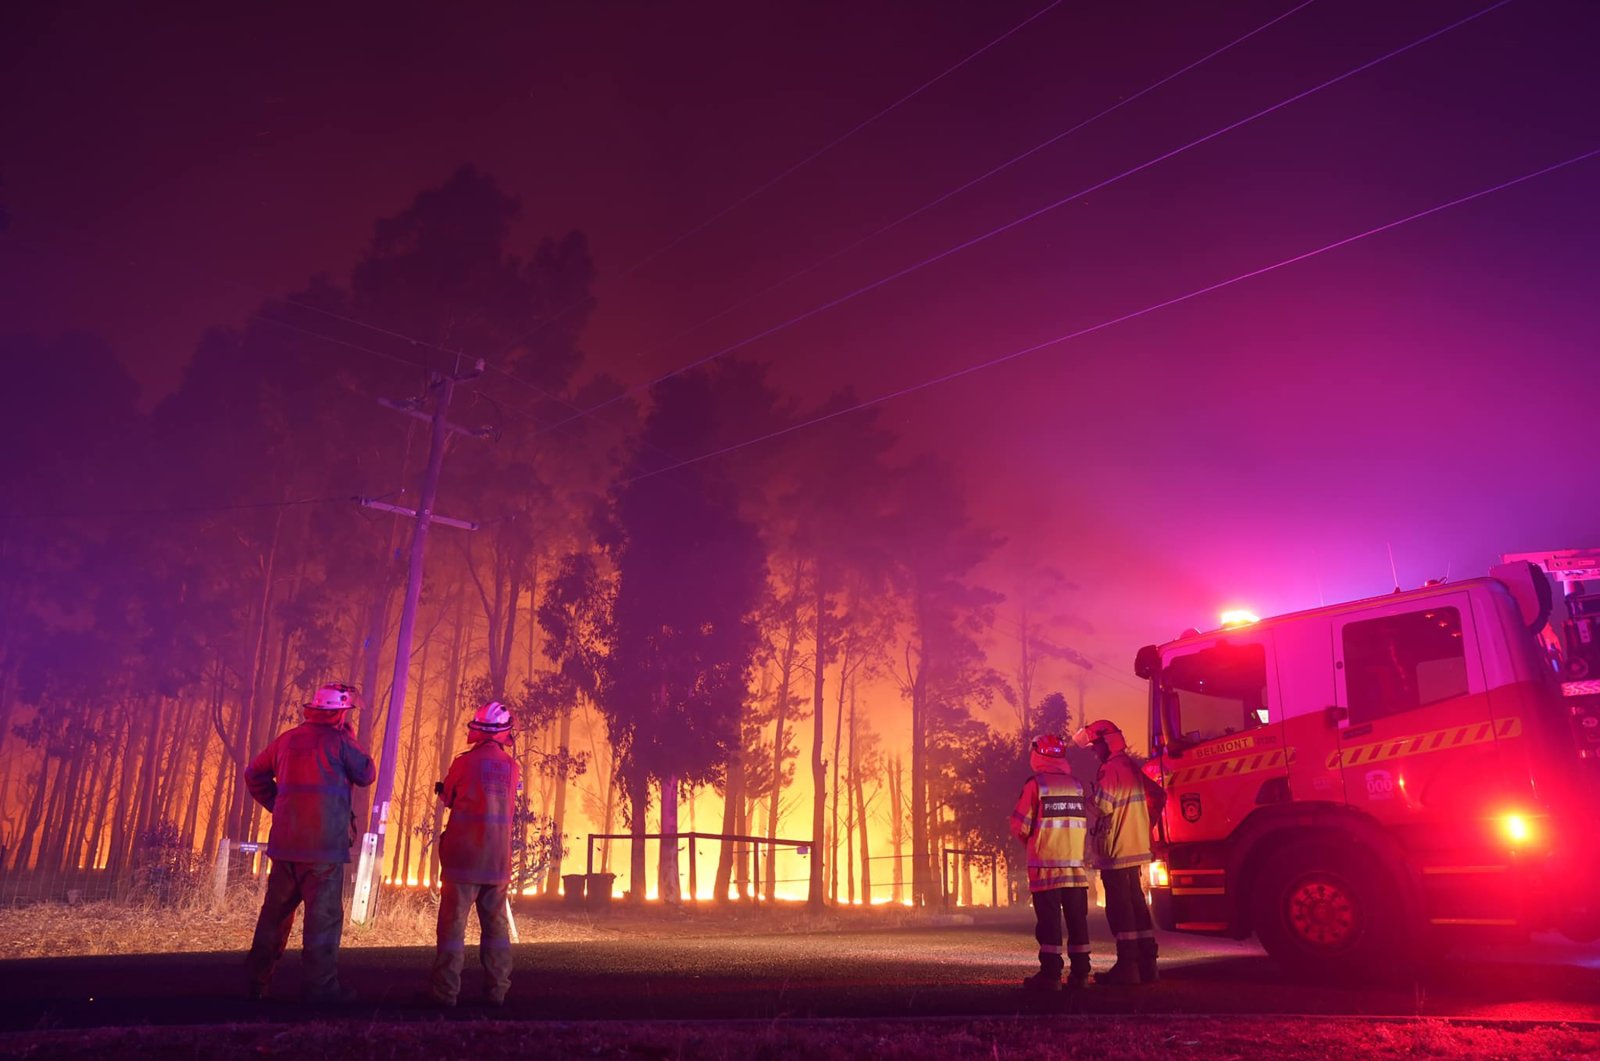 Firefighters attend a fire at Wooroloo, near Perth, Australia, Feb. 1, 2021. (AP Photo)